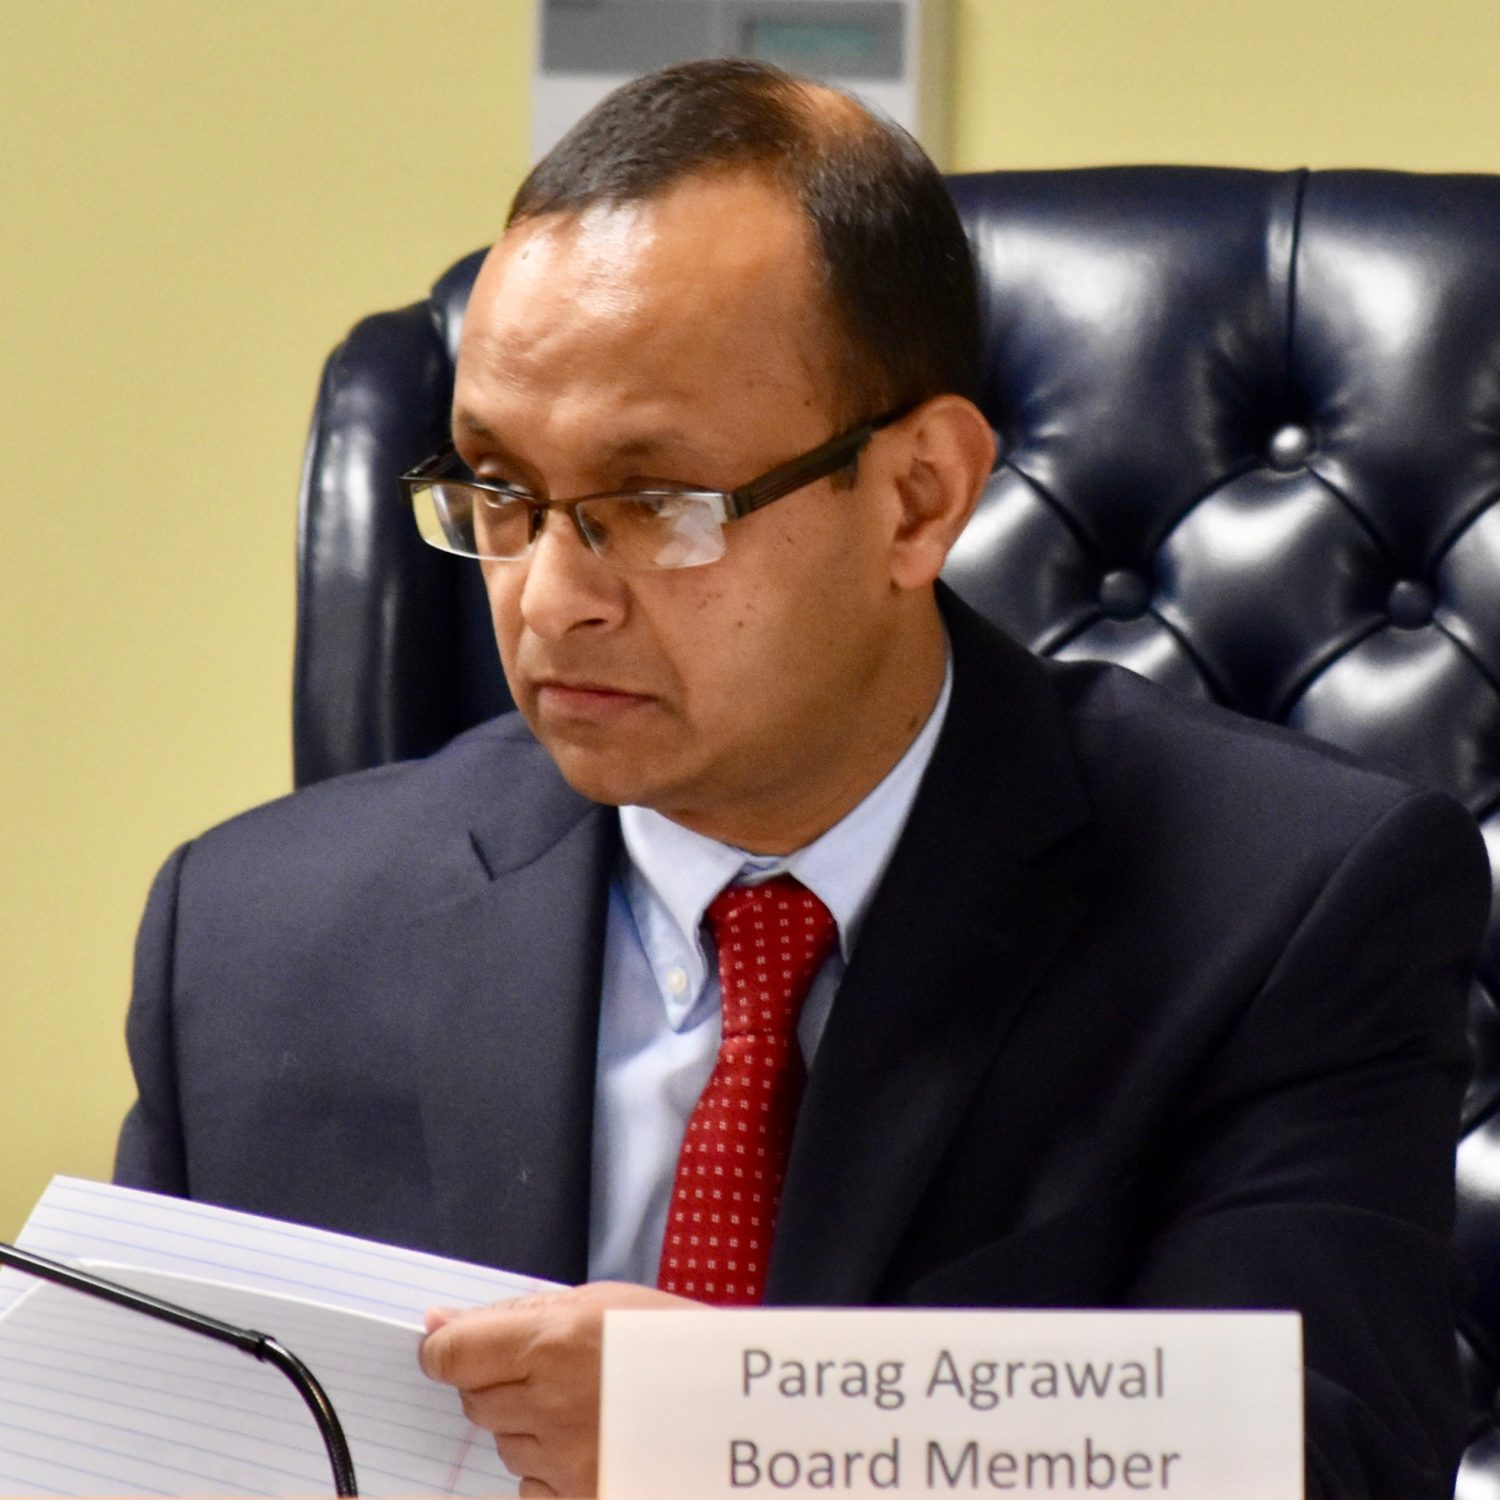 Parag Agrawal out at EFSB, leaving two members to decide on ...